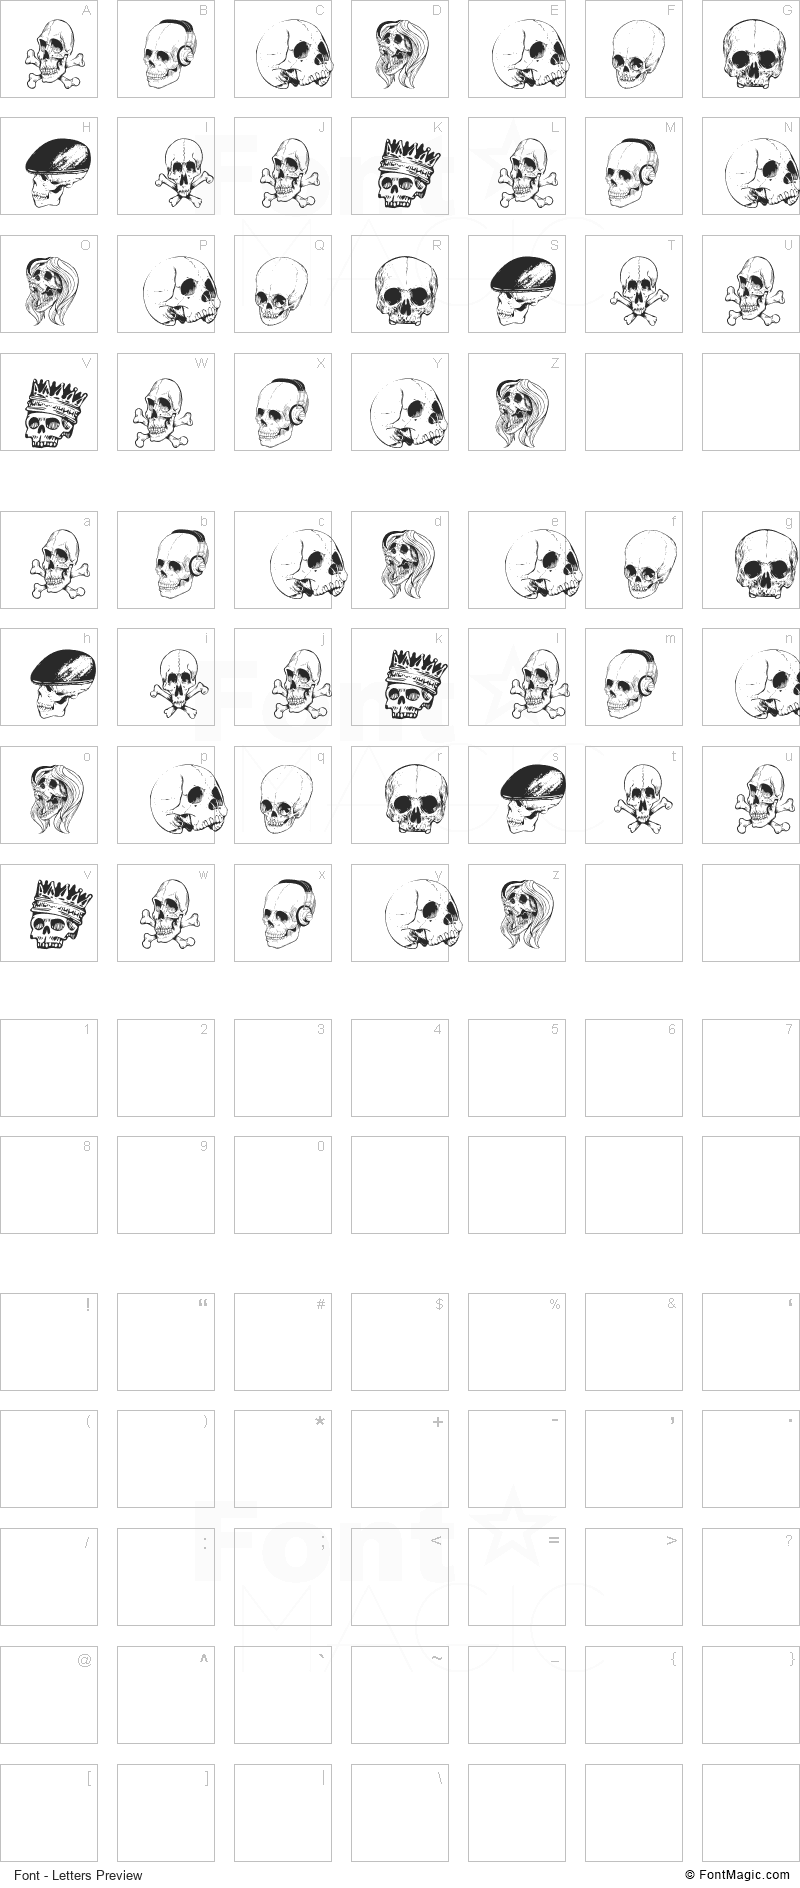 Skull Font - All Latters Preview Chart